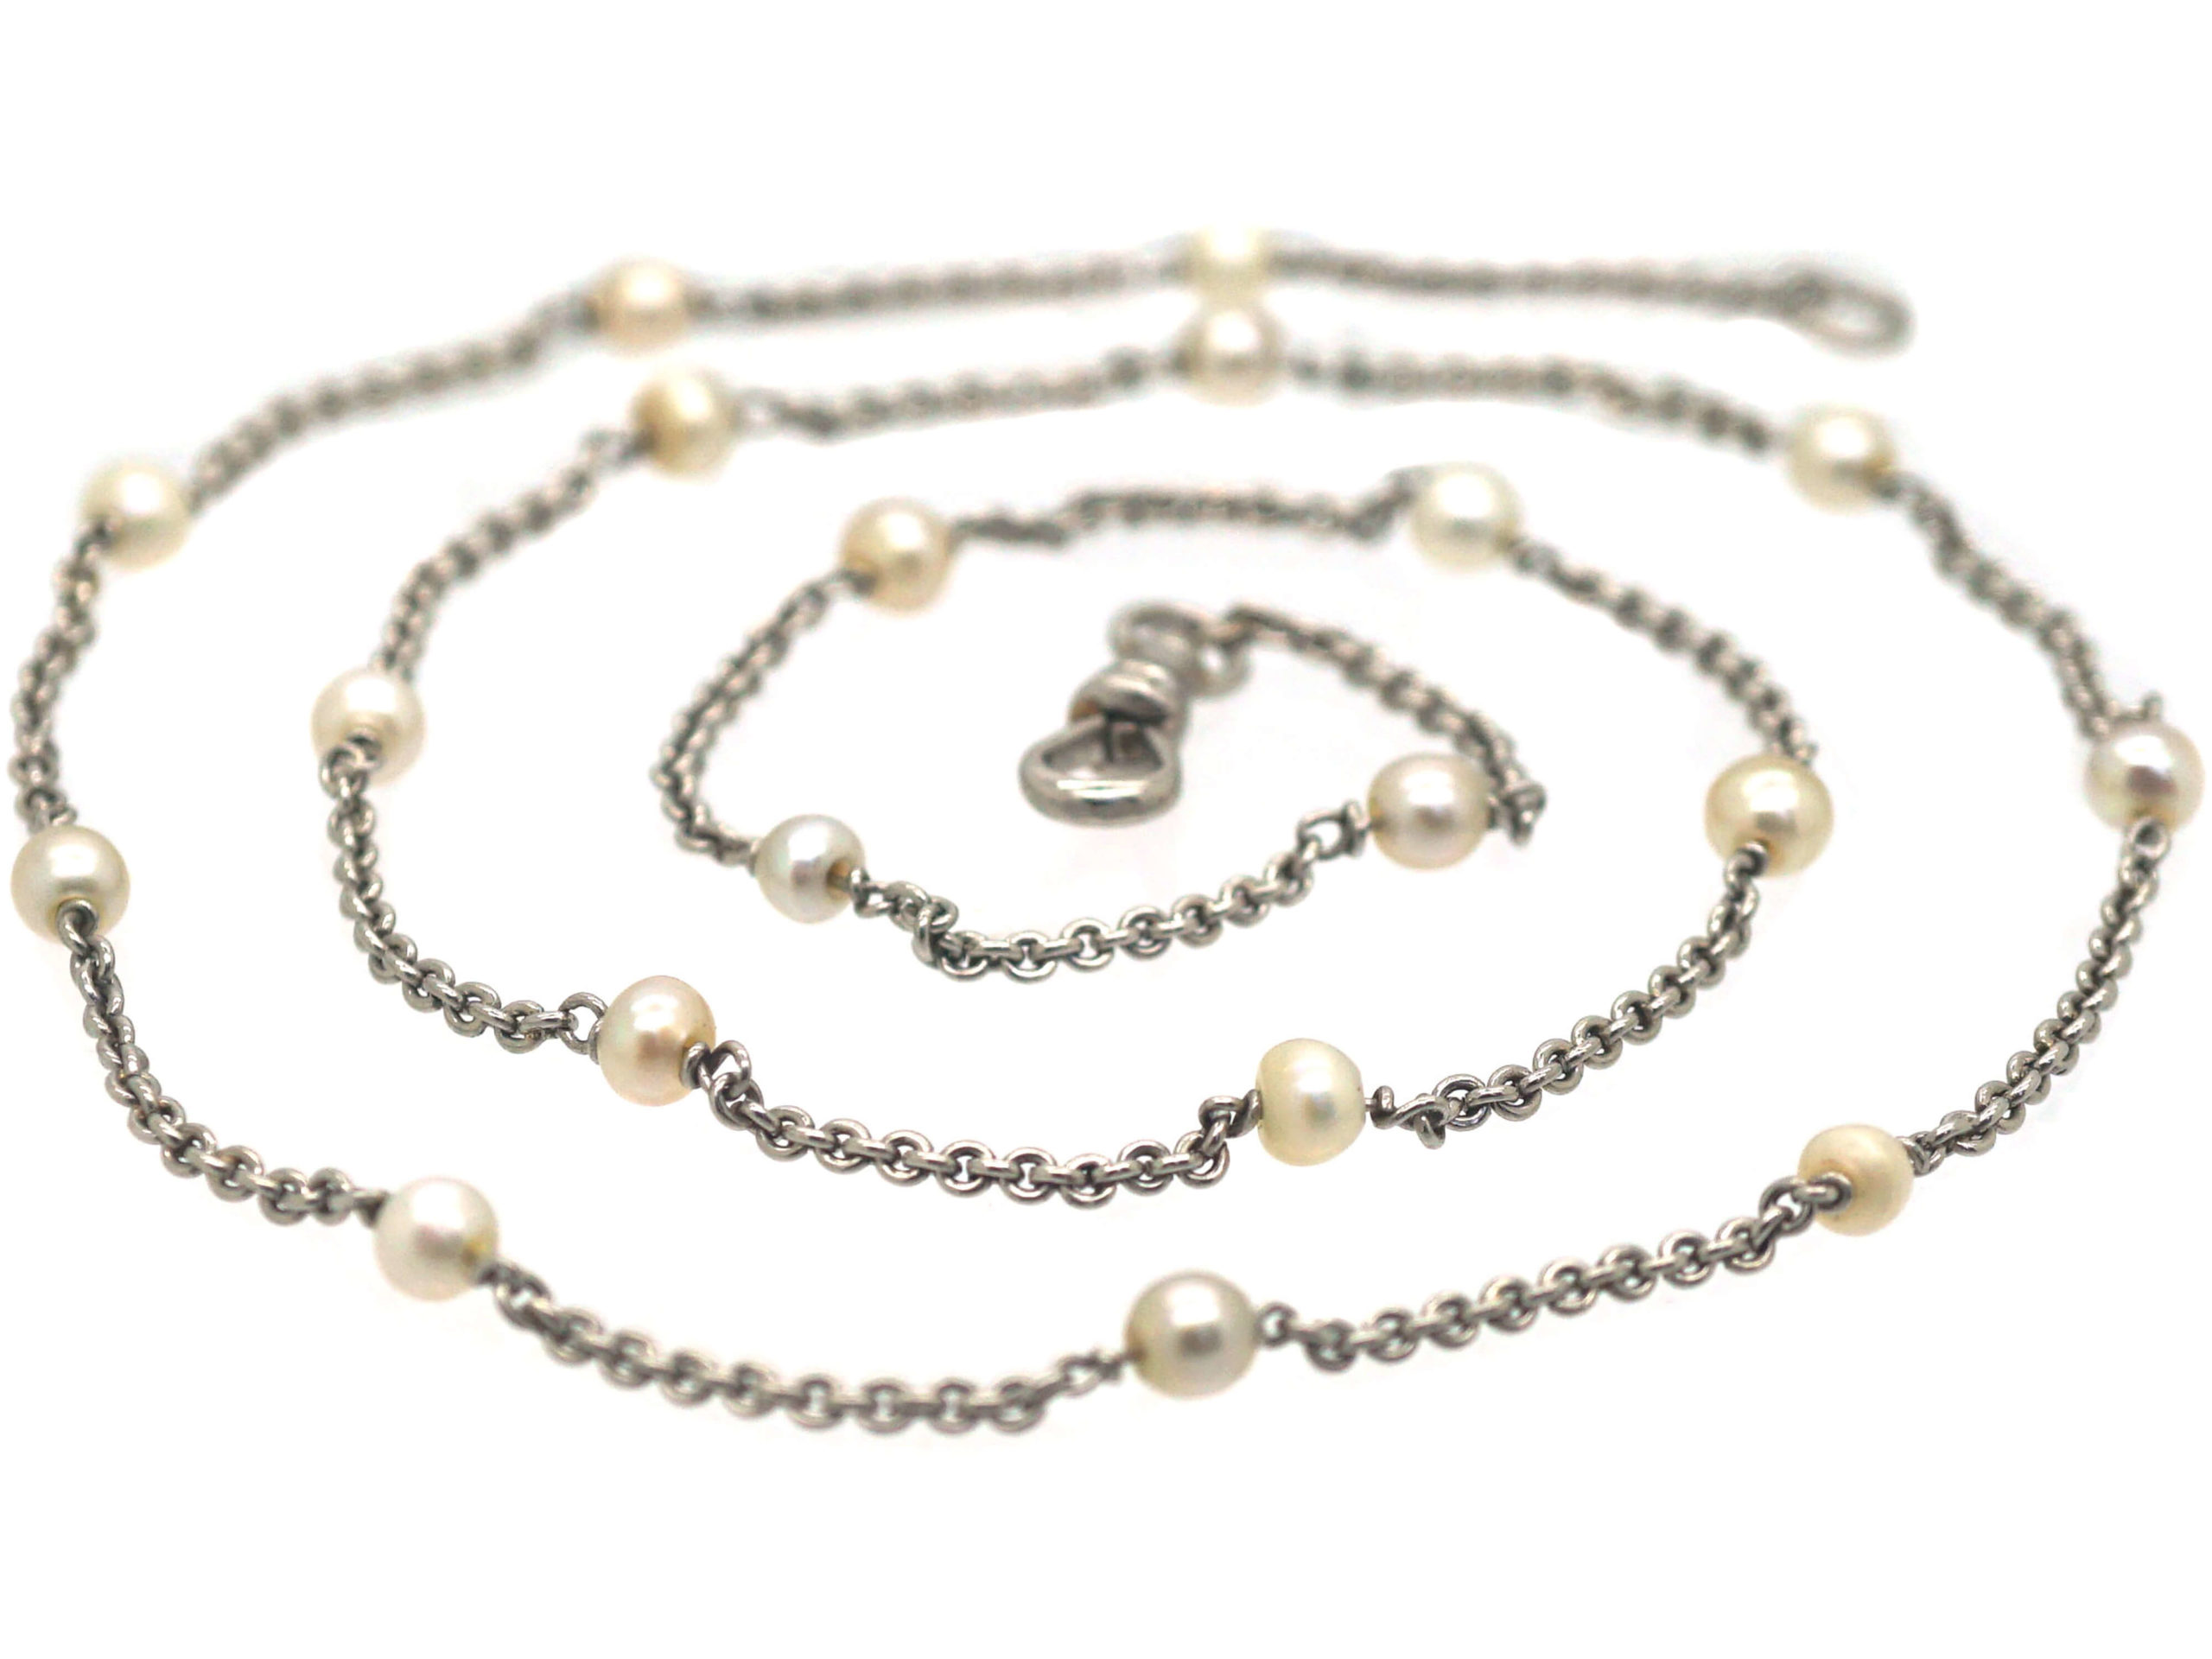 Art Deco 18ct White Gold & Natural Pearls Chain